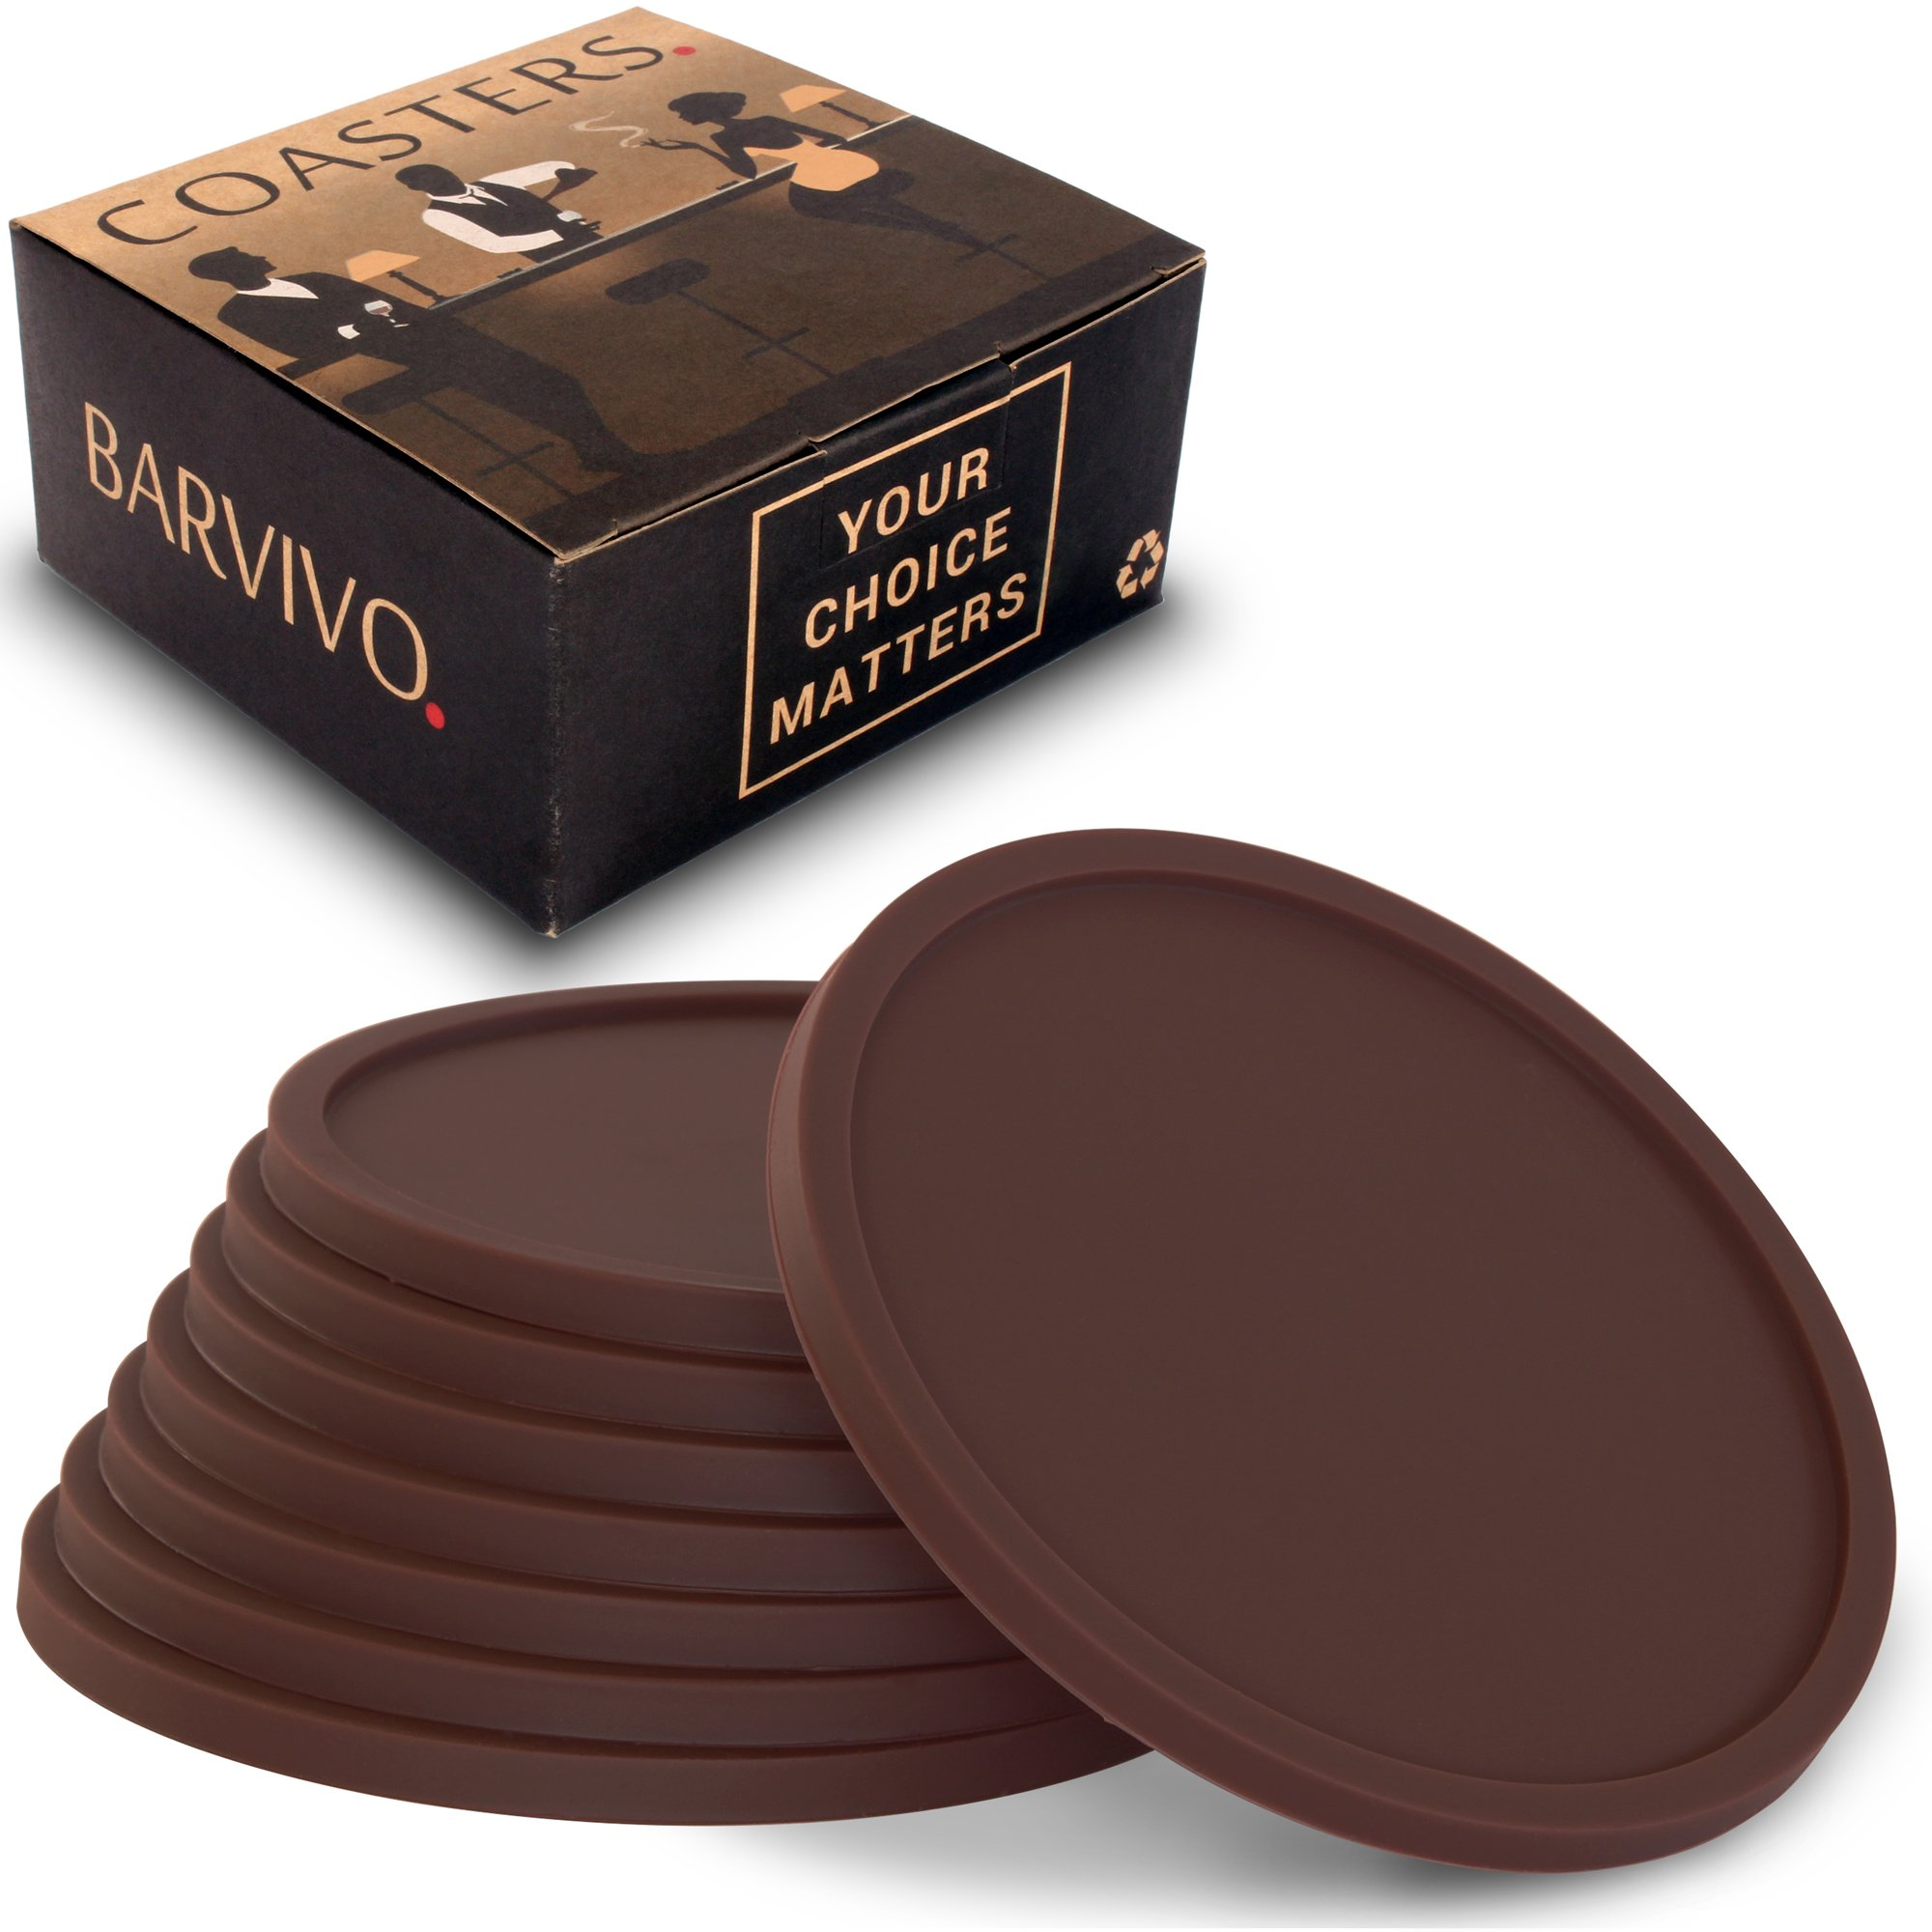 Barvivo Drink Coasters Set of 8 - Tabletop Protection for Any Table Type, Wood, Granite, Glass, Soapstone, Marble, Stone Tables - Perfect Brown Soft Coaster Fits Any Size of Drinking Glasses.